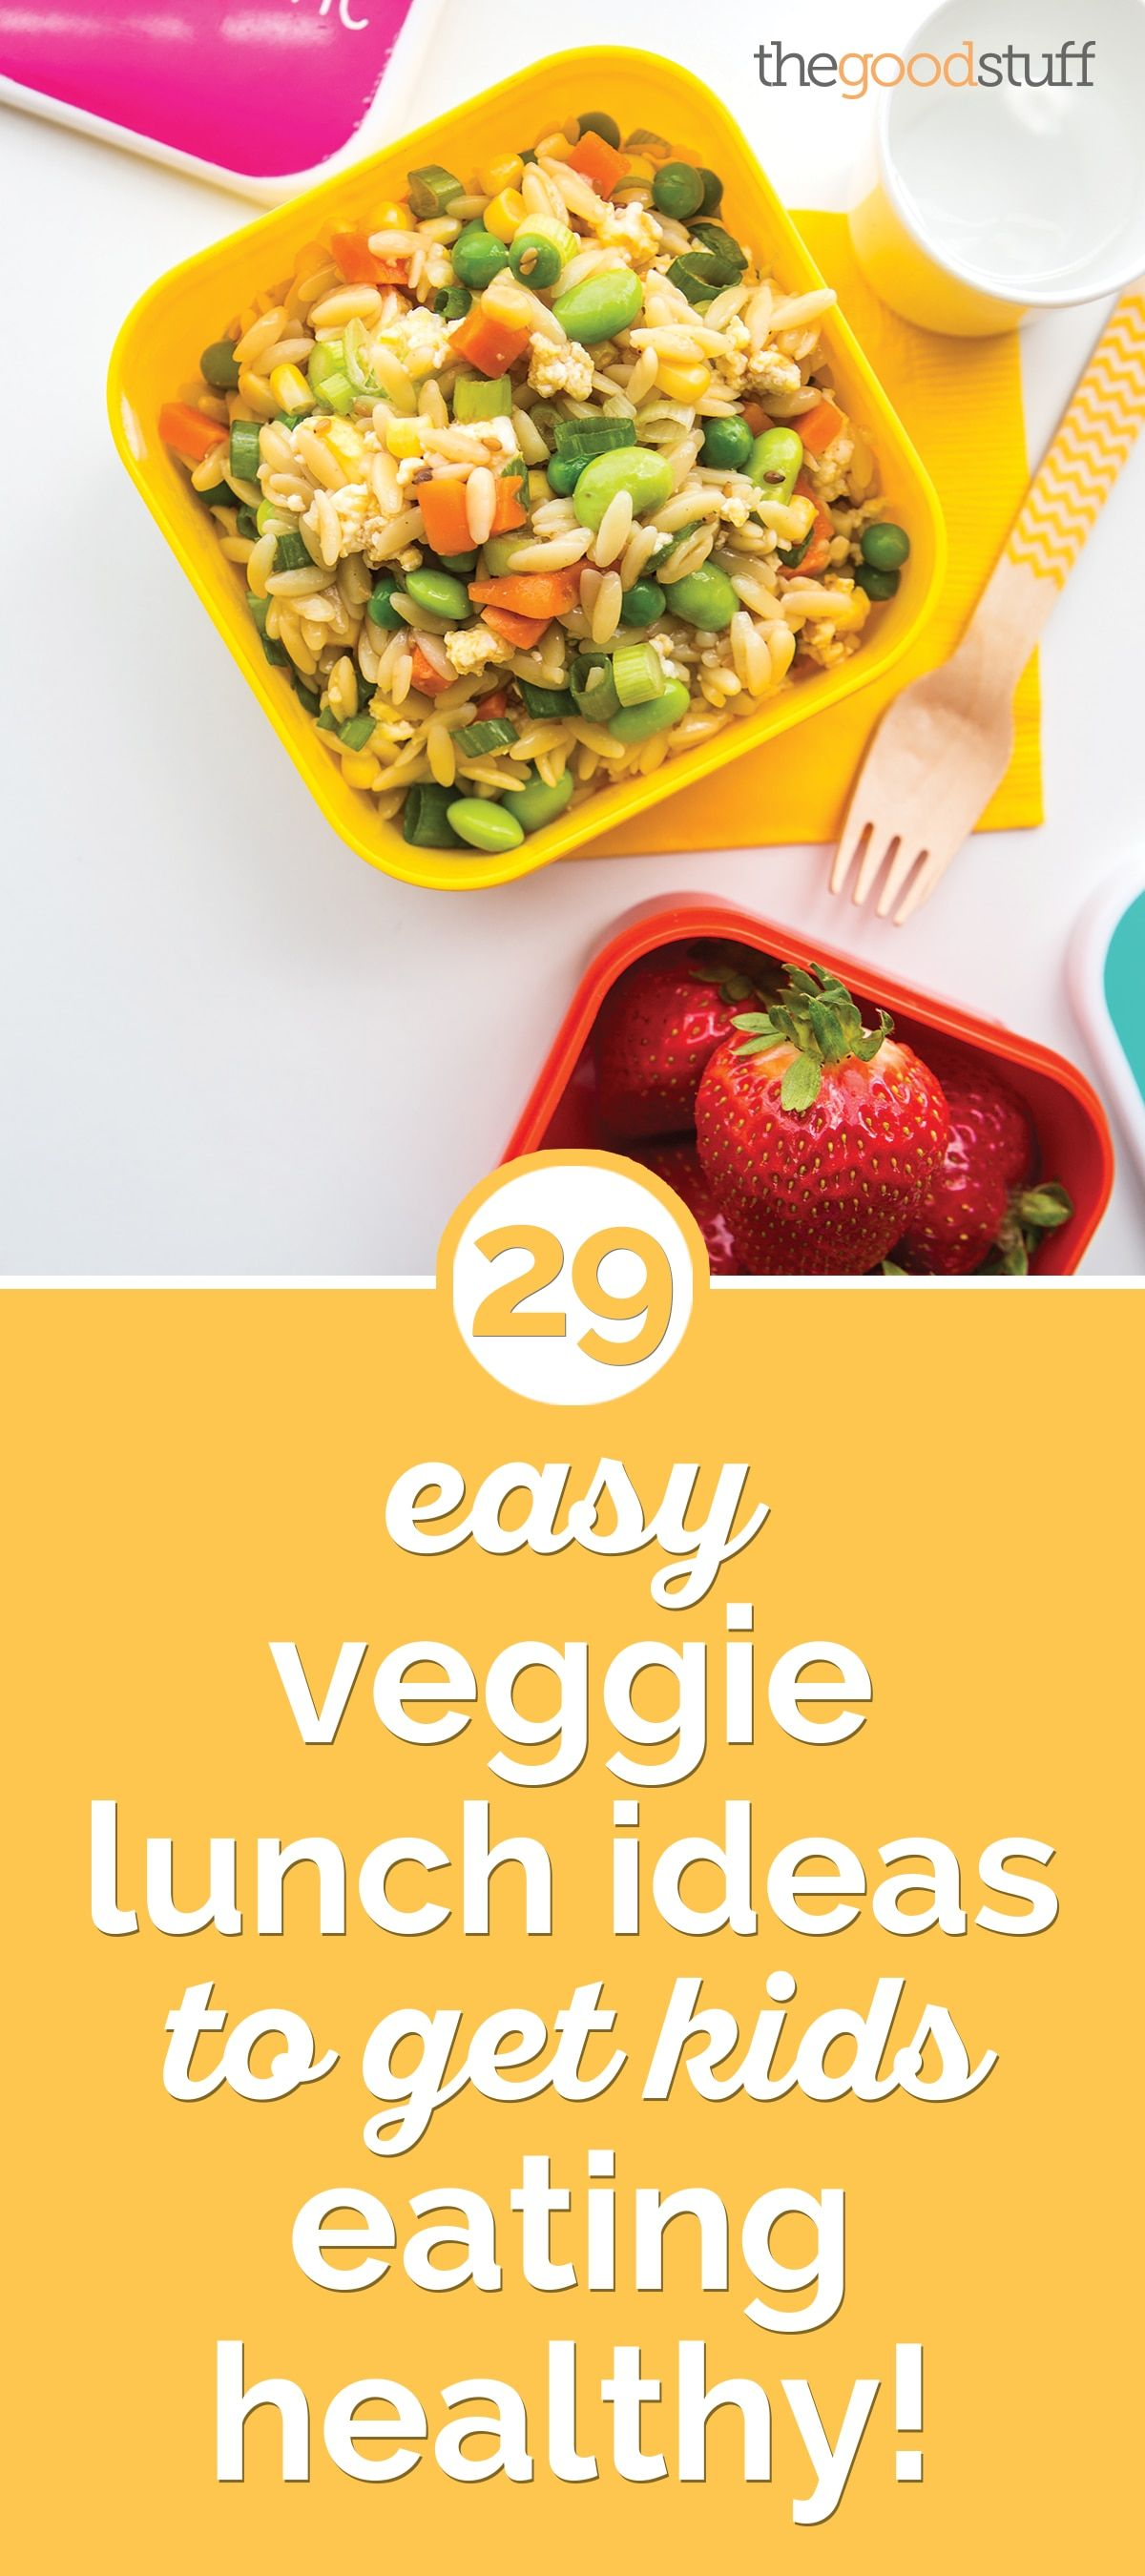 29 Easy Veggie Lunch Ideas to Get Kids Eating Healthy images